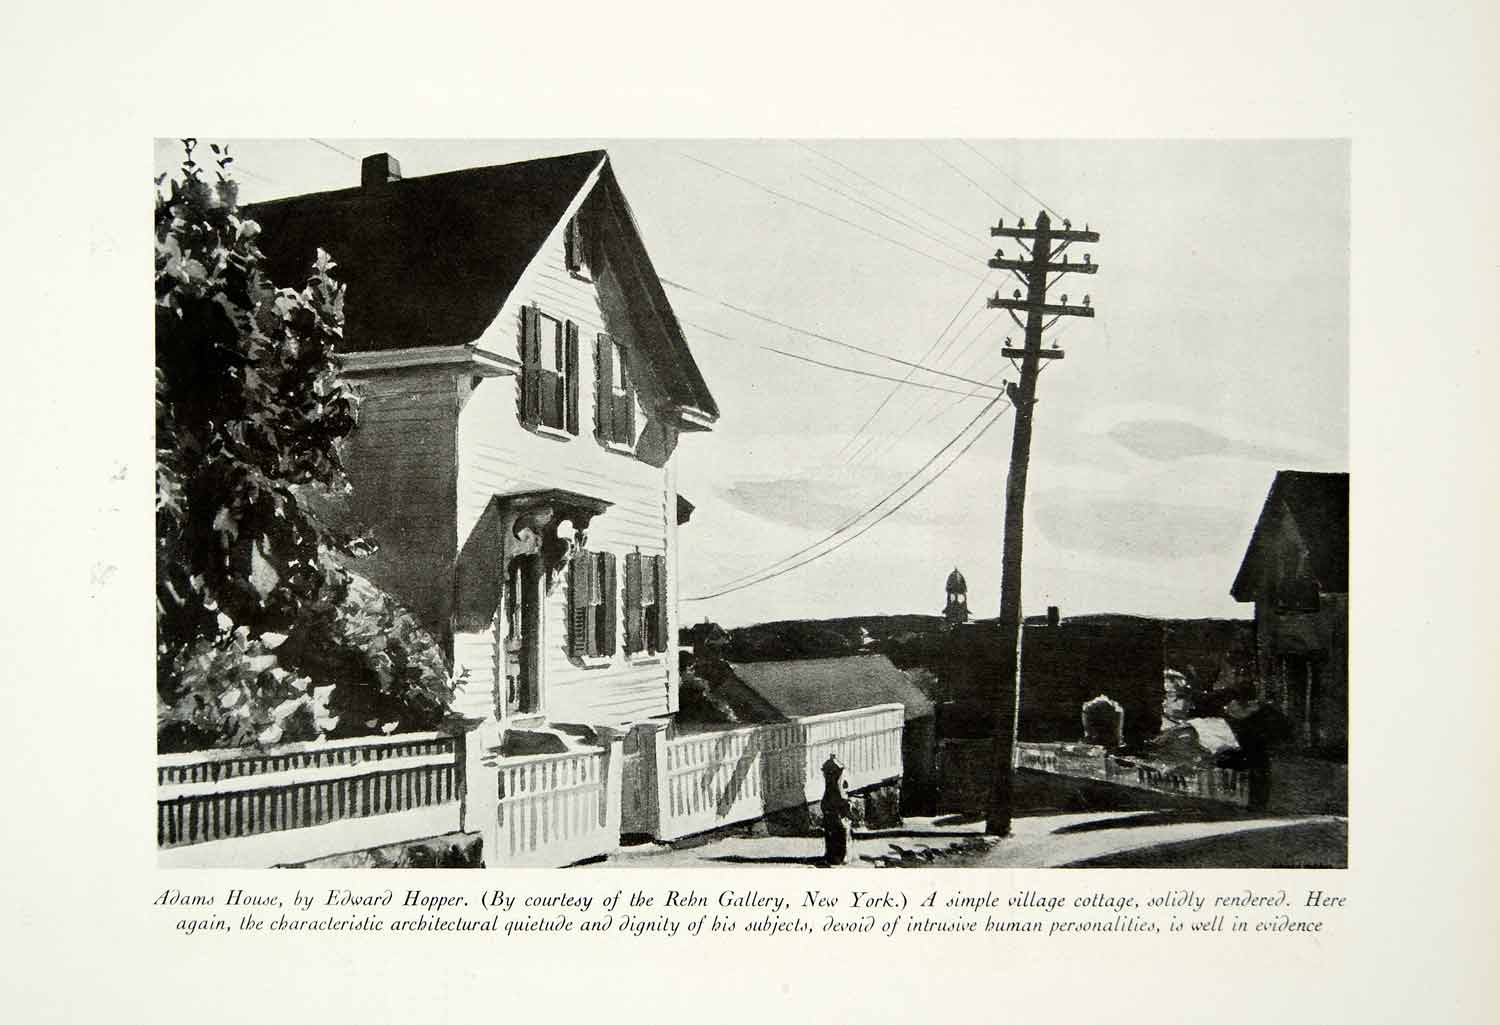 1931 Print Adams House Edward Hopper Townscape Telegraph Wires Pole Fence CA1